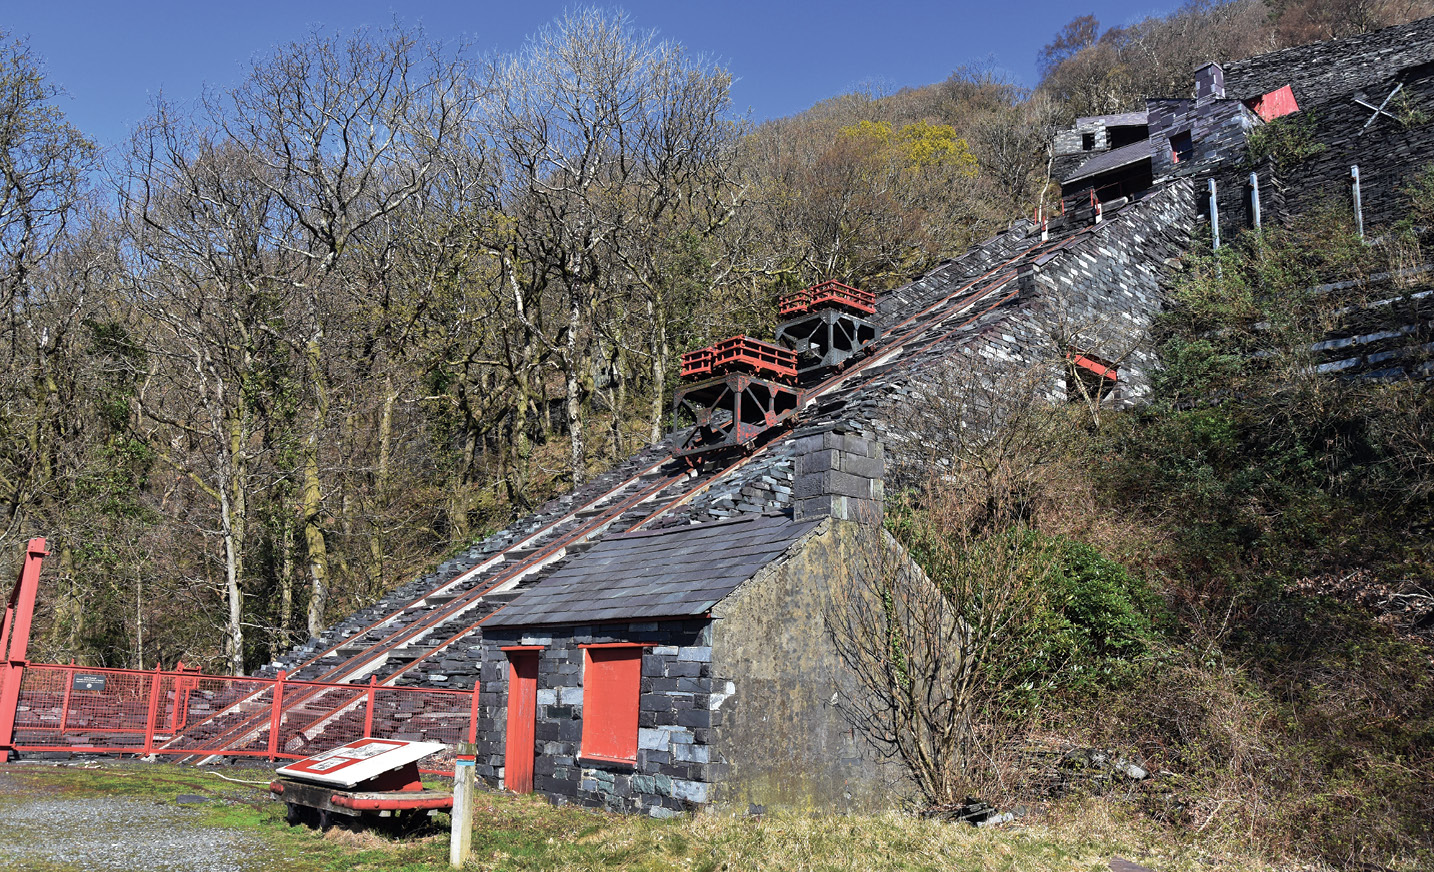 below Looming above the National Slate Museum in Llanberis is the Vivian Slate Quarry, which was opened in the 1860s and now survives with its stepped working floors and its system of transporter inclines intact. The inclined plane shown here was restored to working order in 1999, and is occasionally used to demonstrate how wagons loaded with worked slate going downhill pull empty wagons up from gallery to gallery.